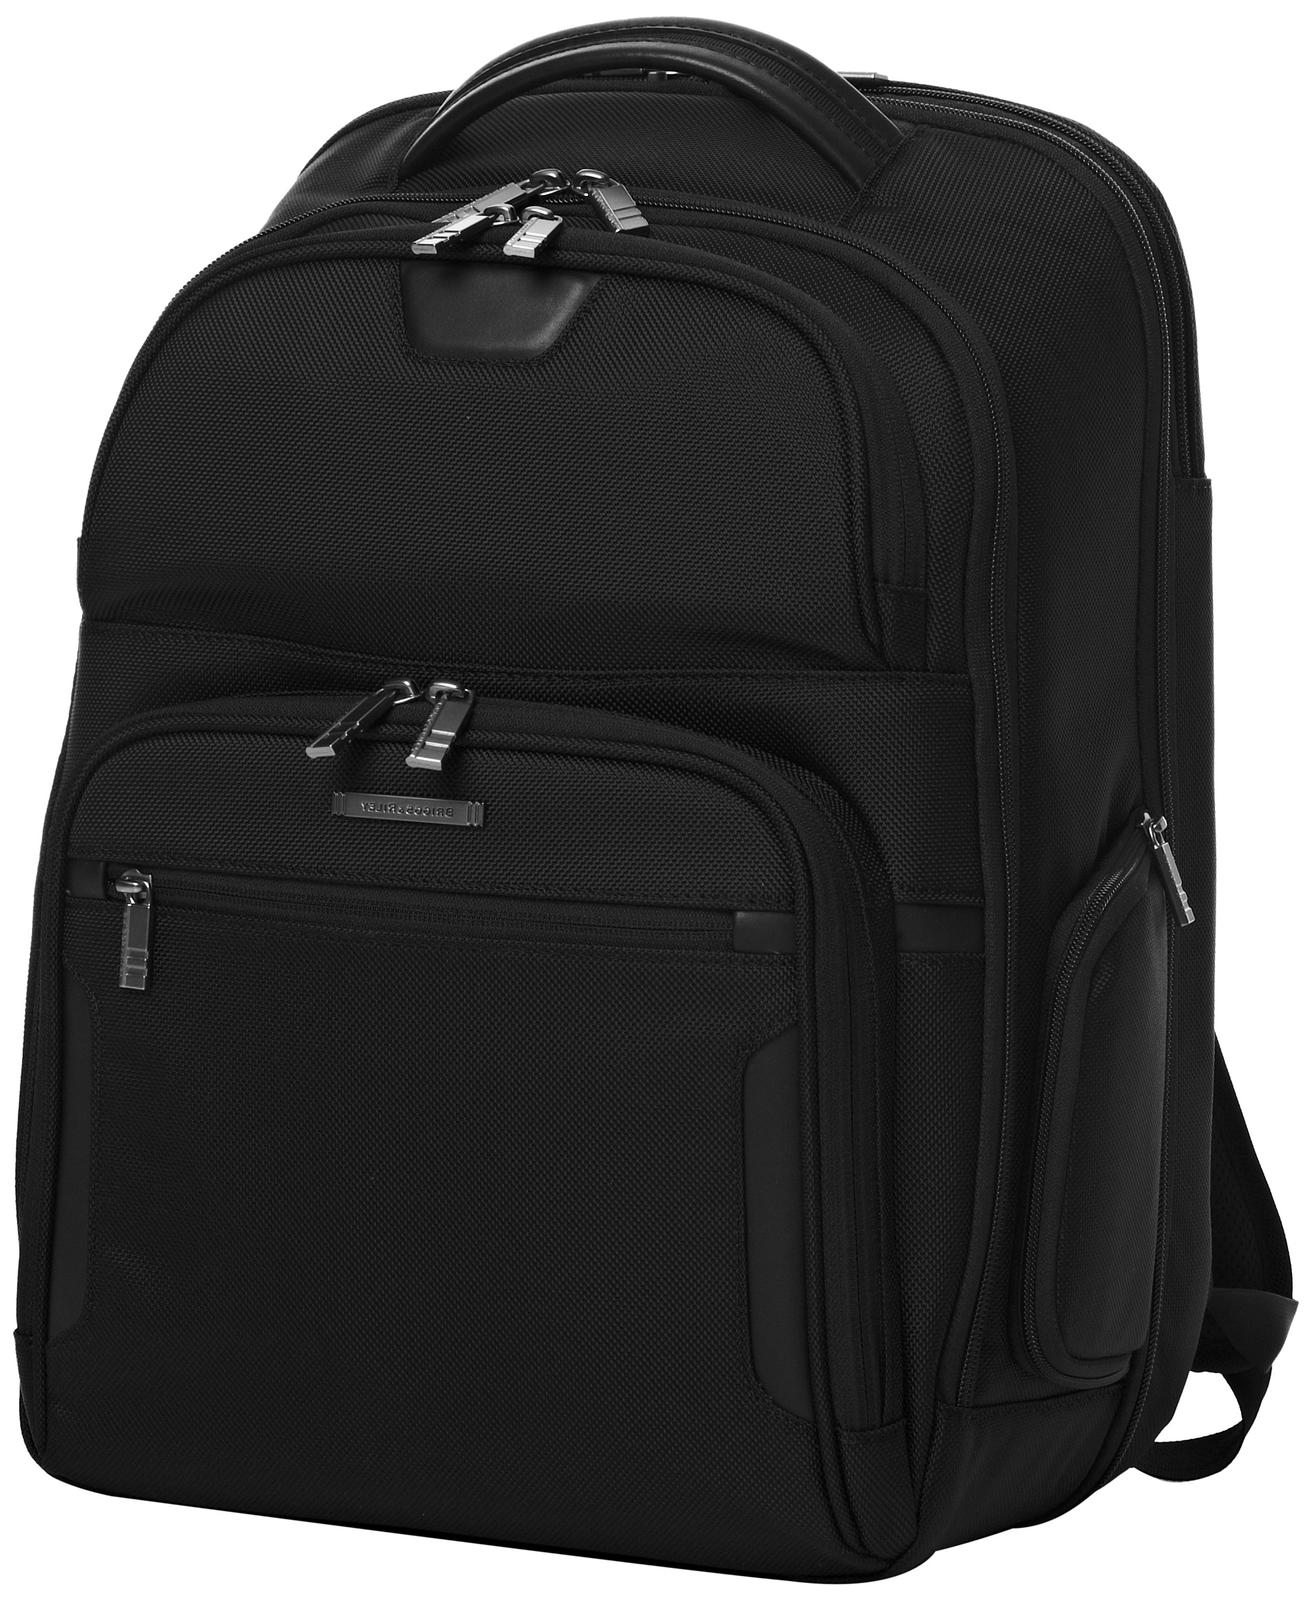 Briggs & Riley Large Clamshell Laptop Backpack - Checkpoint